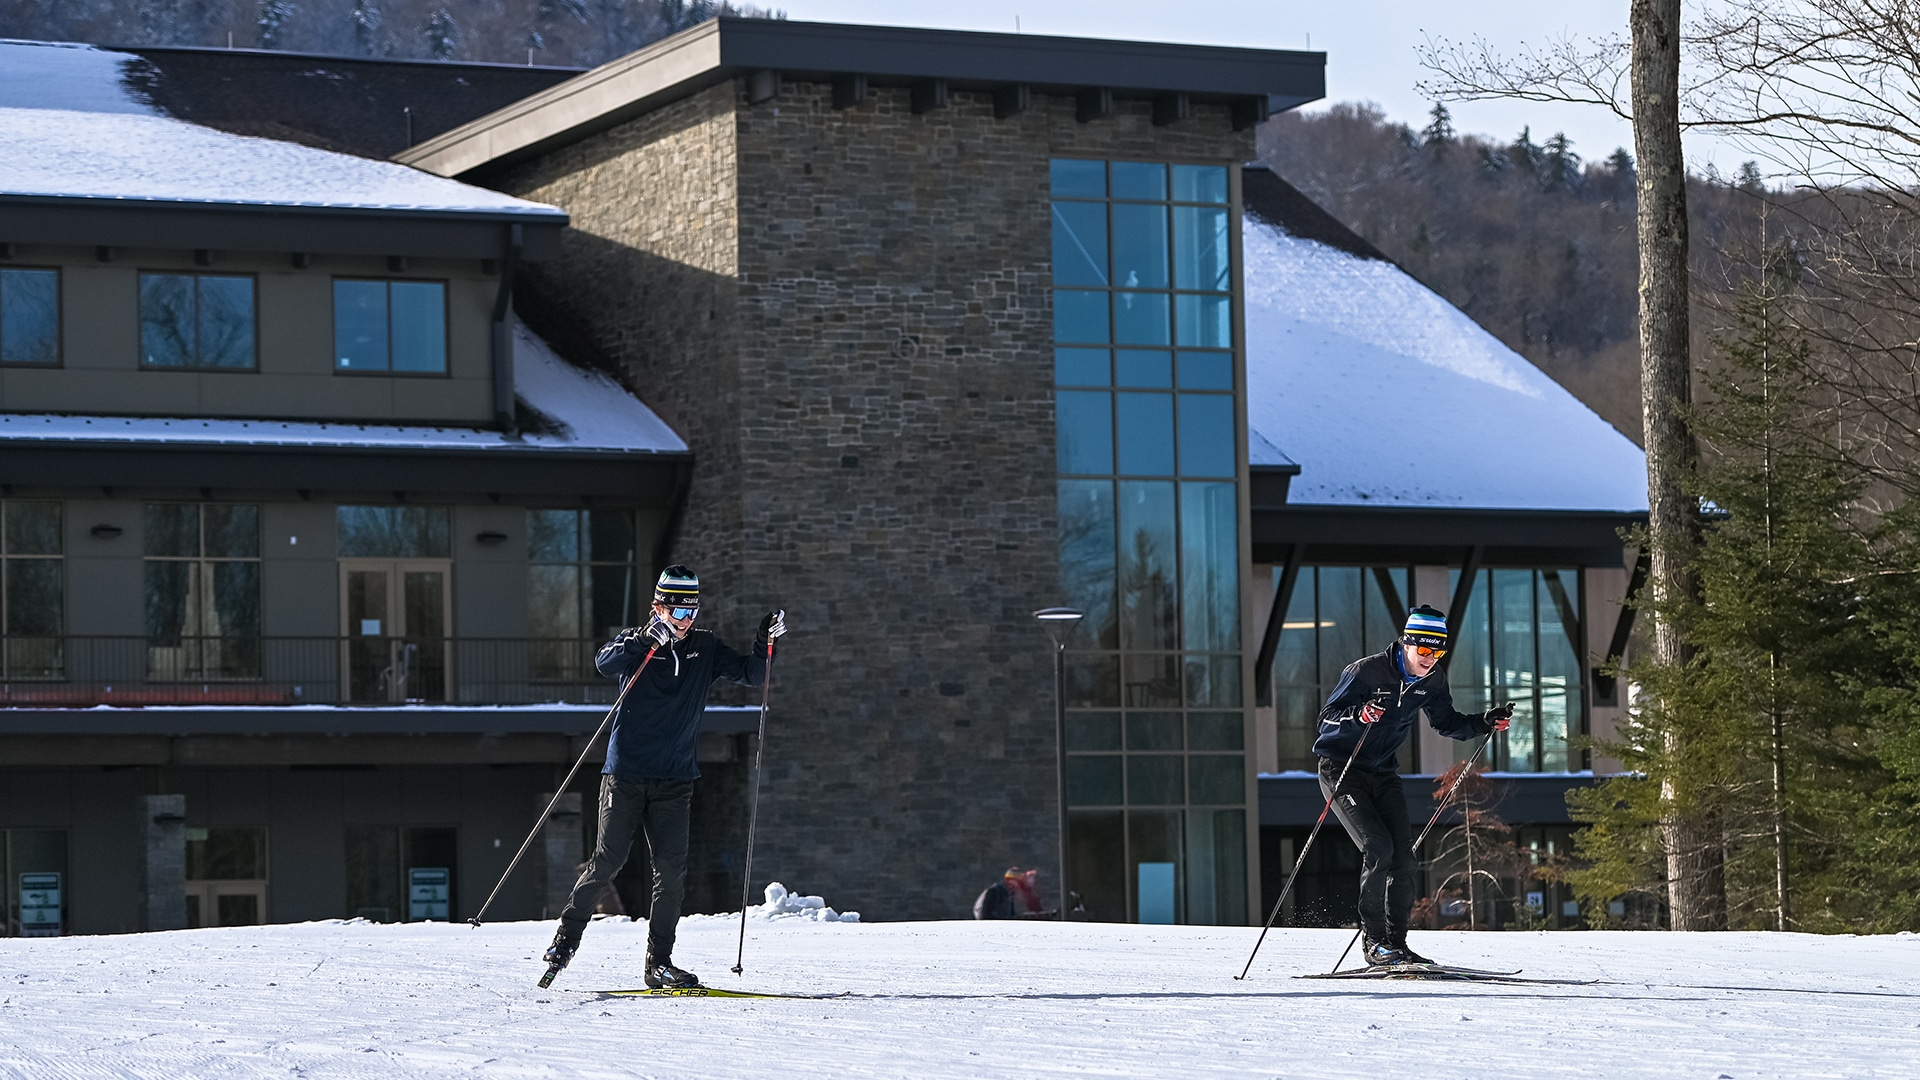 Skiers outside the lodge at the Mount Van Hoevenberg nordic skiing center